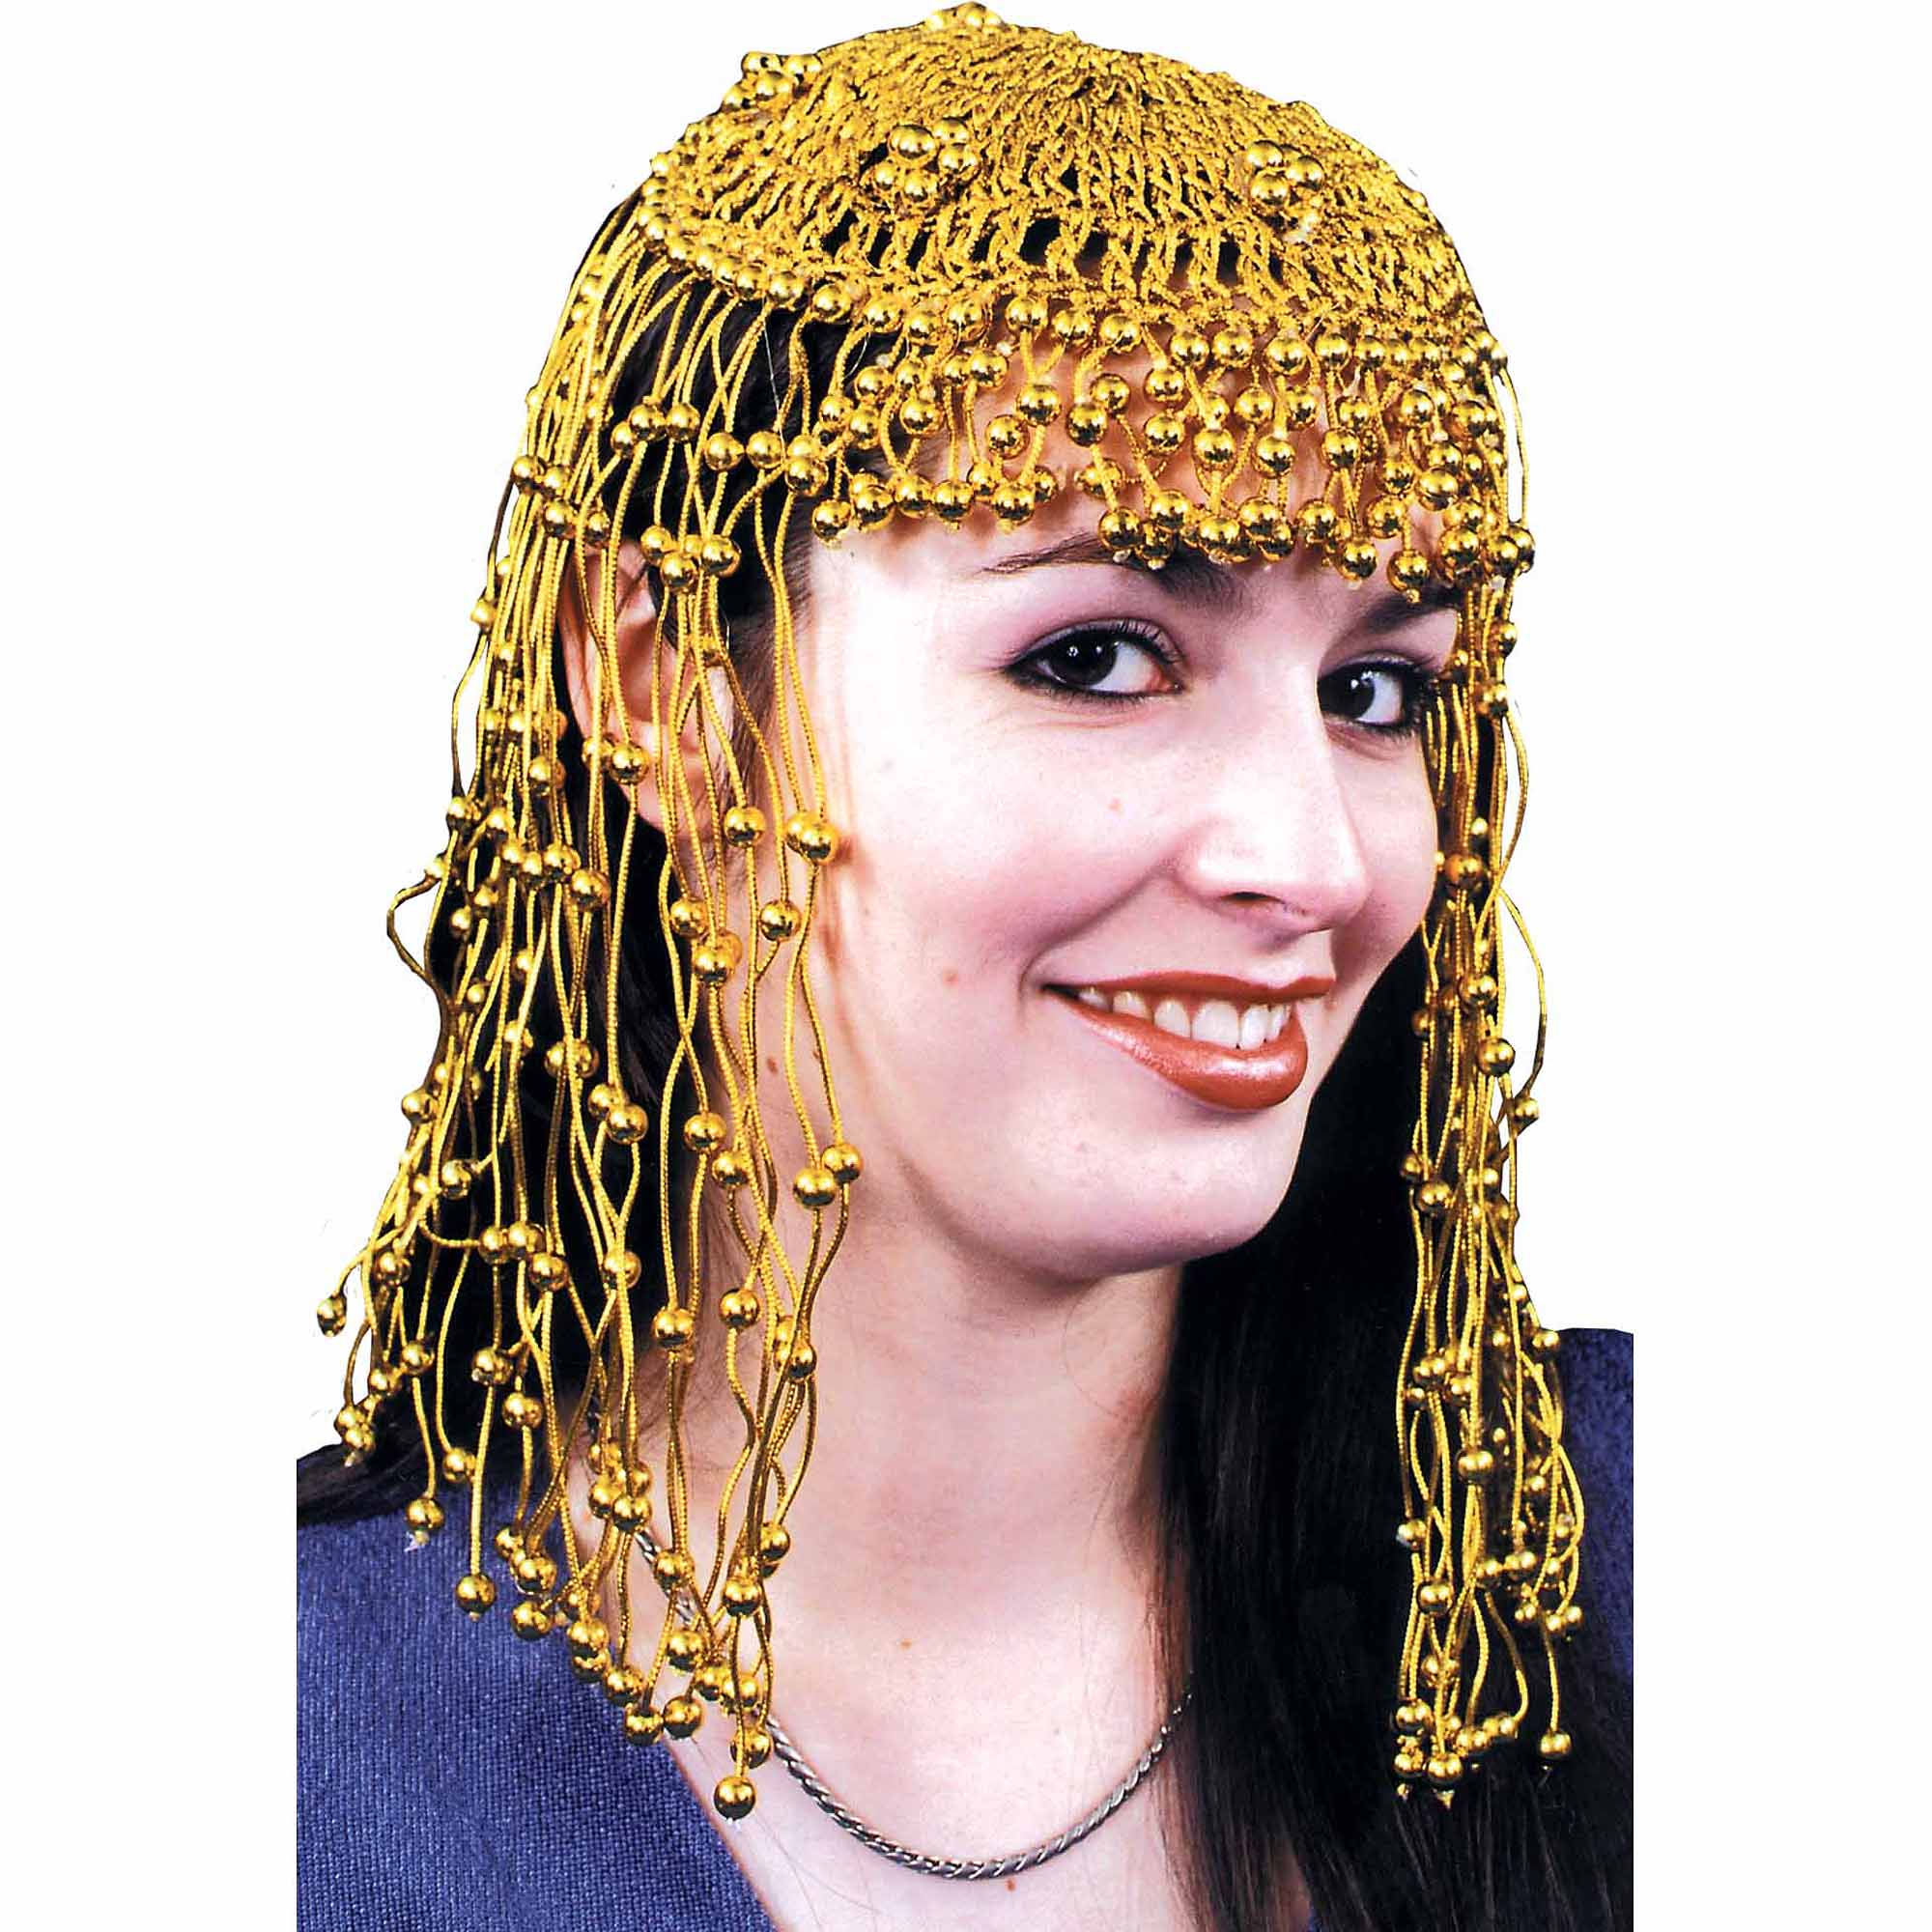 Egyptian Gold Headpiece Adult Halloween Accessory